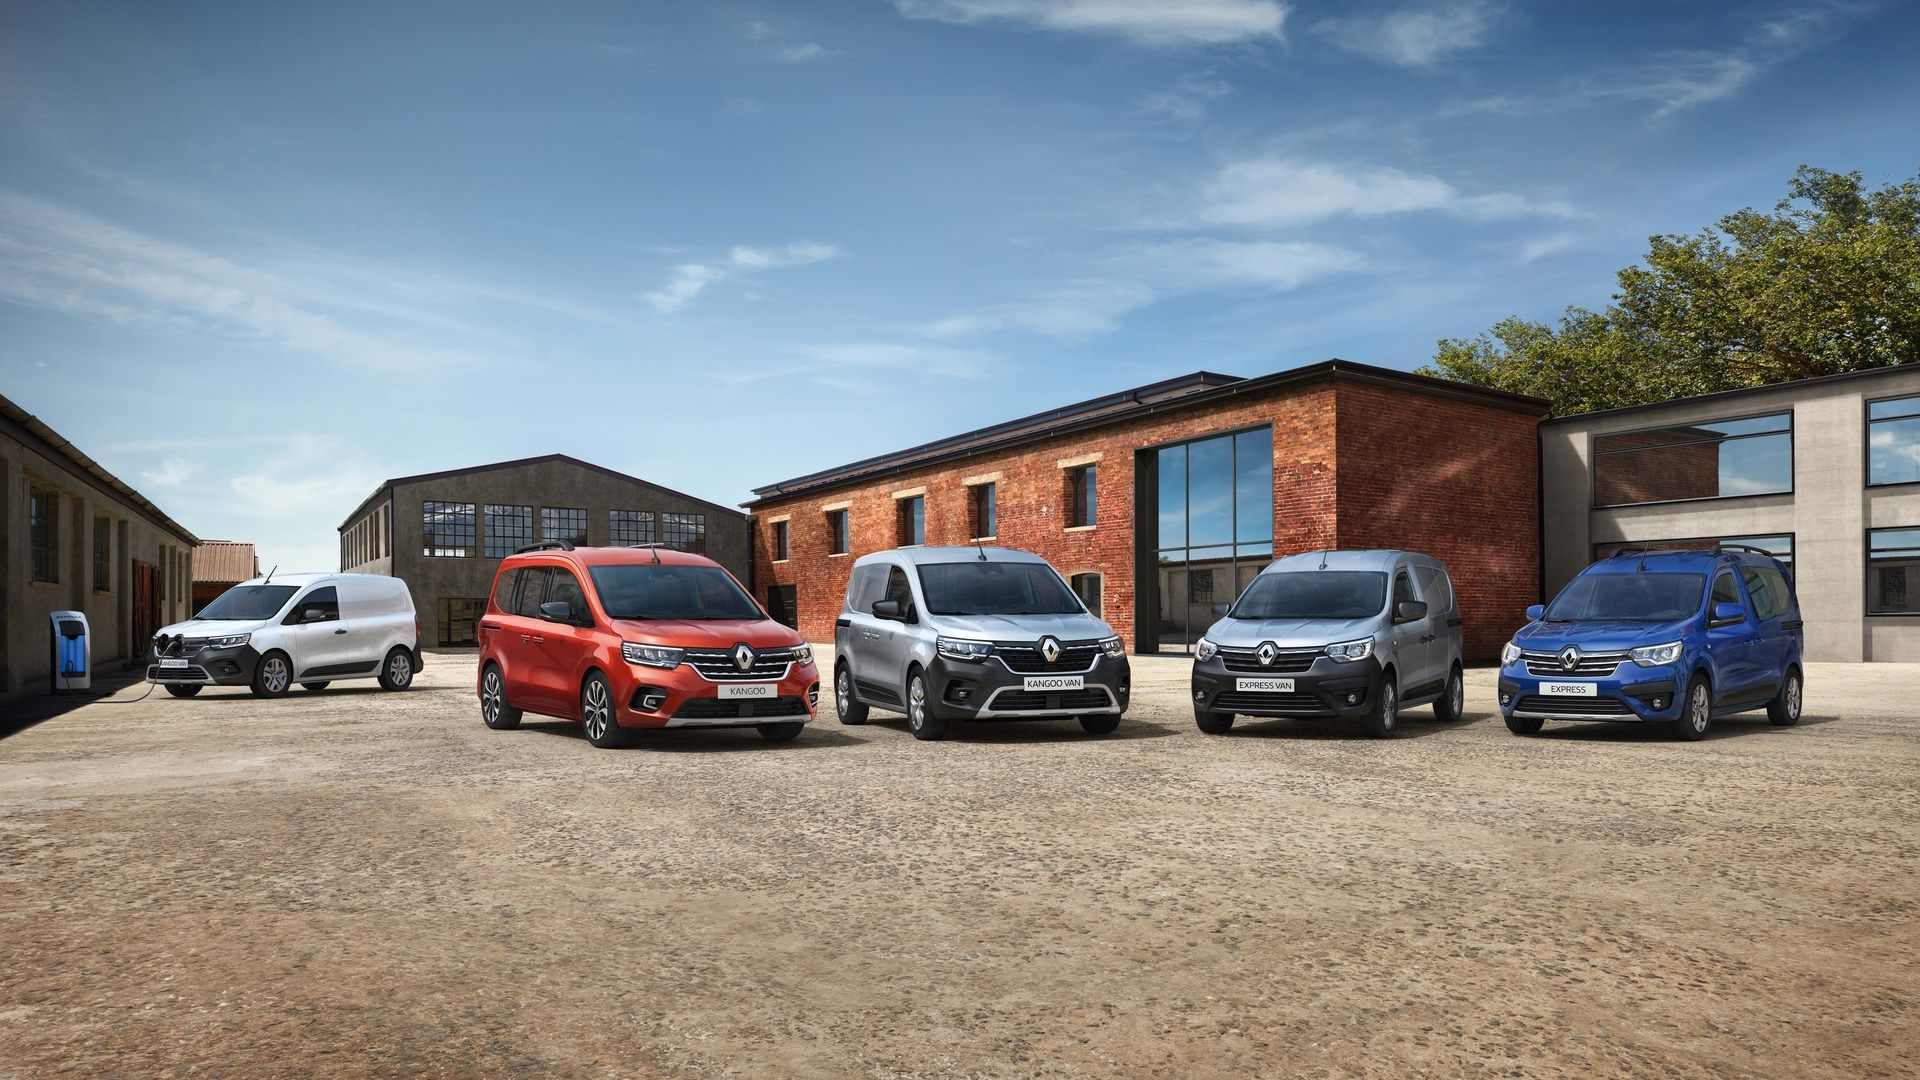 1-THE-ALL-NEW-RENAULT-KANGOO-AND-THE-ALL-NEW-RENAULT-EXPRESS